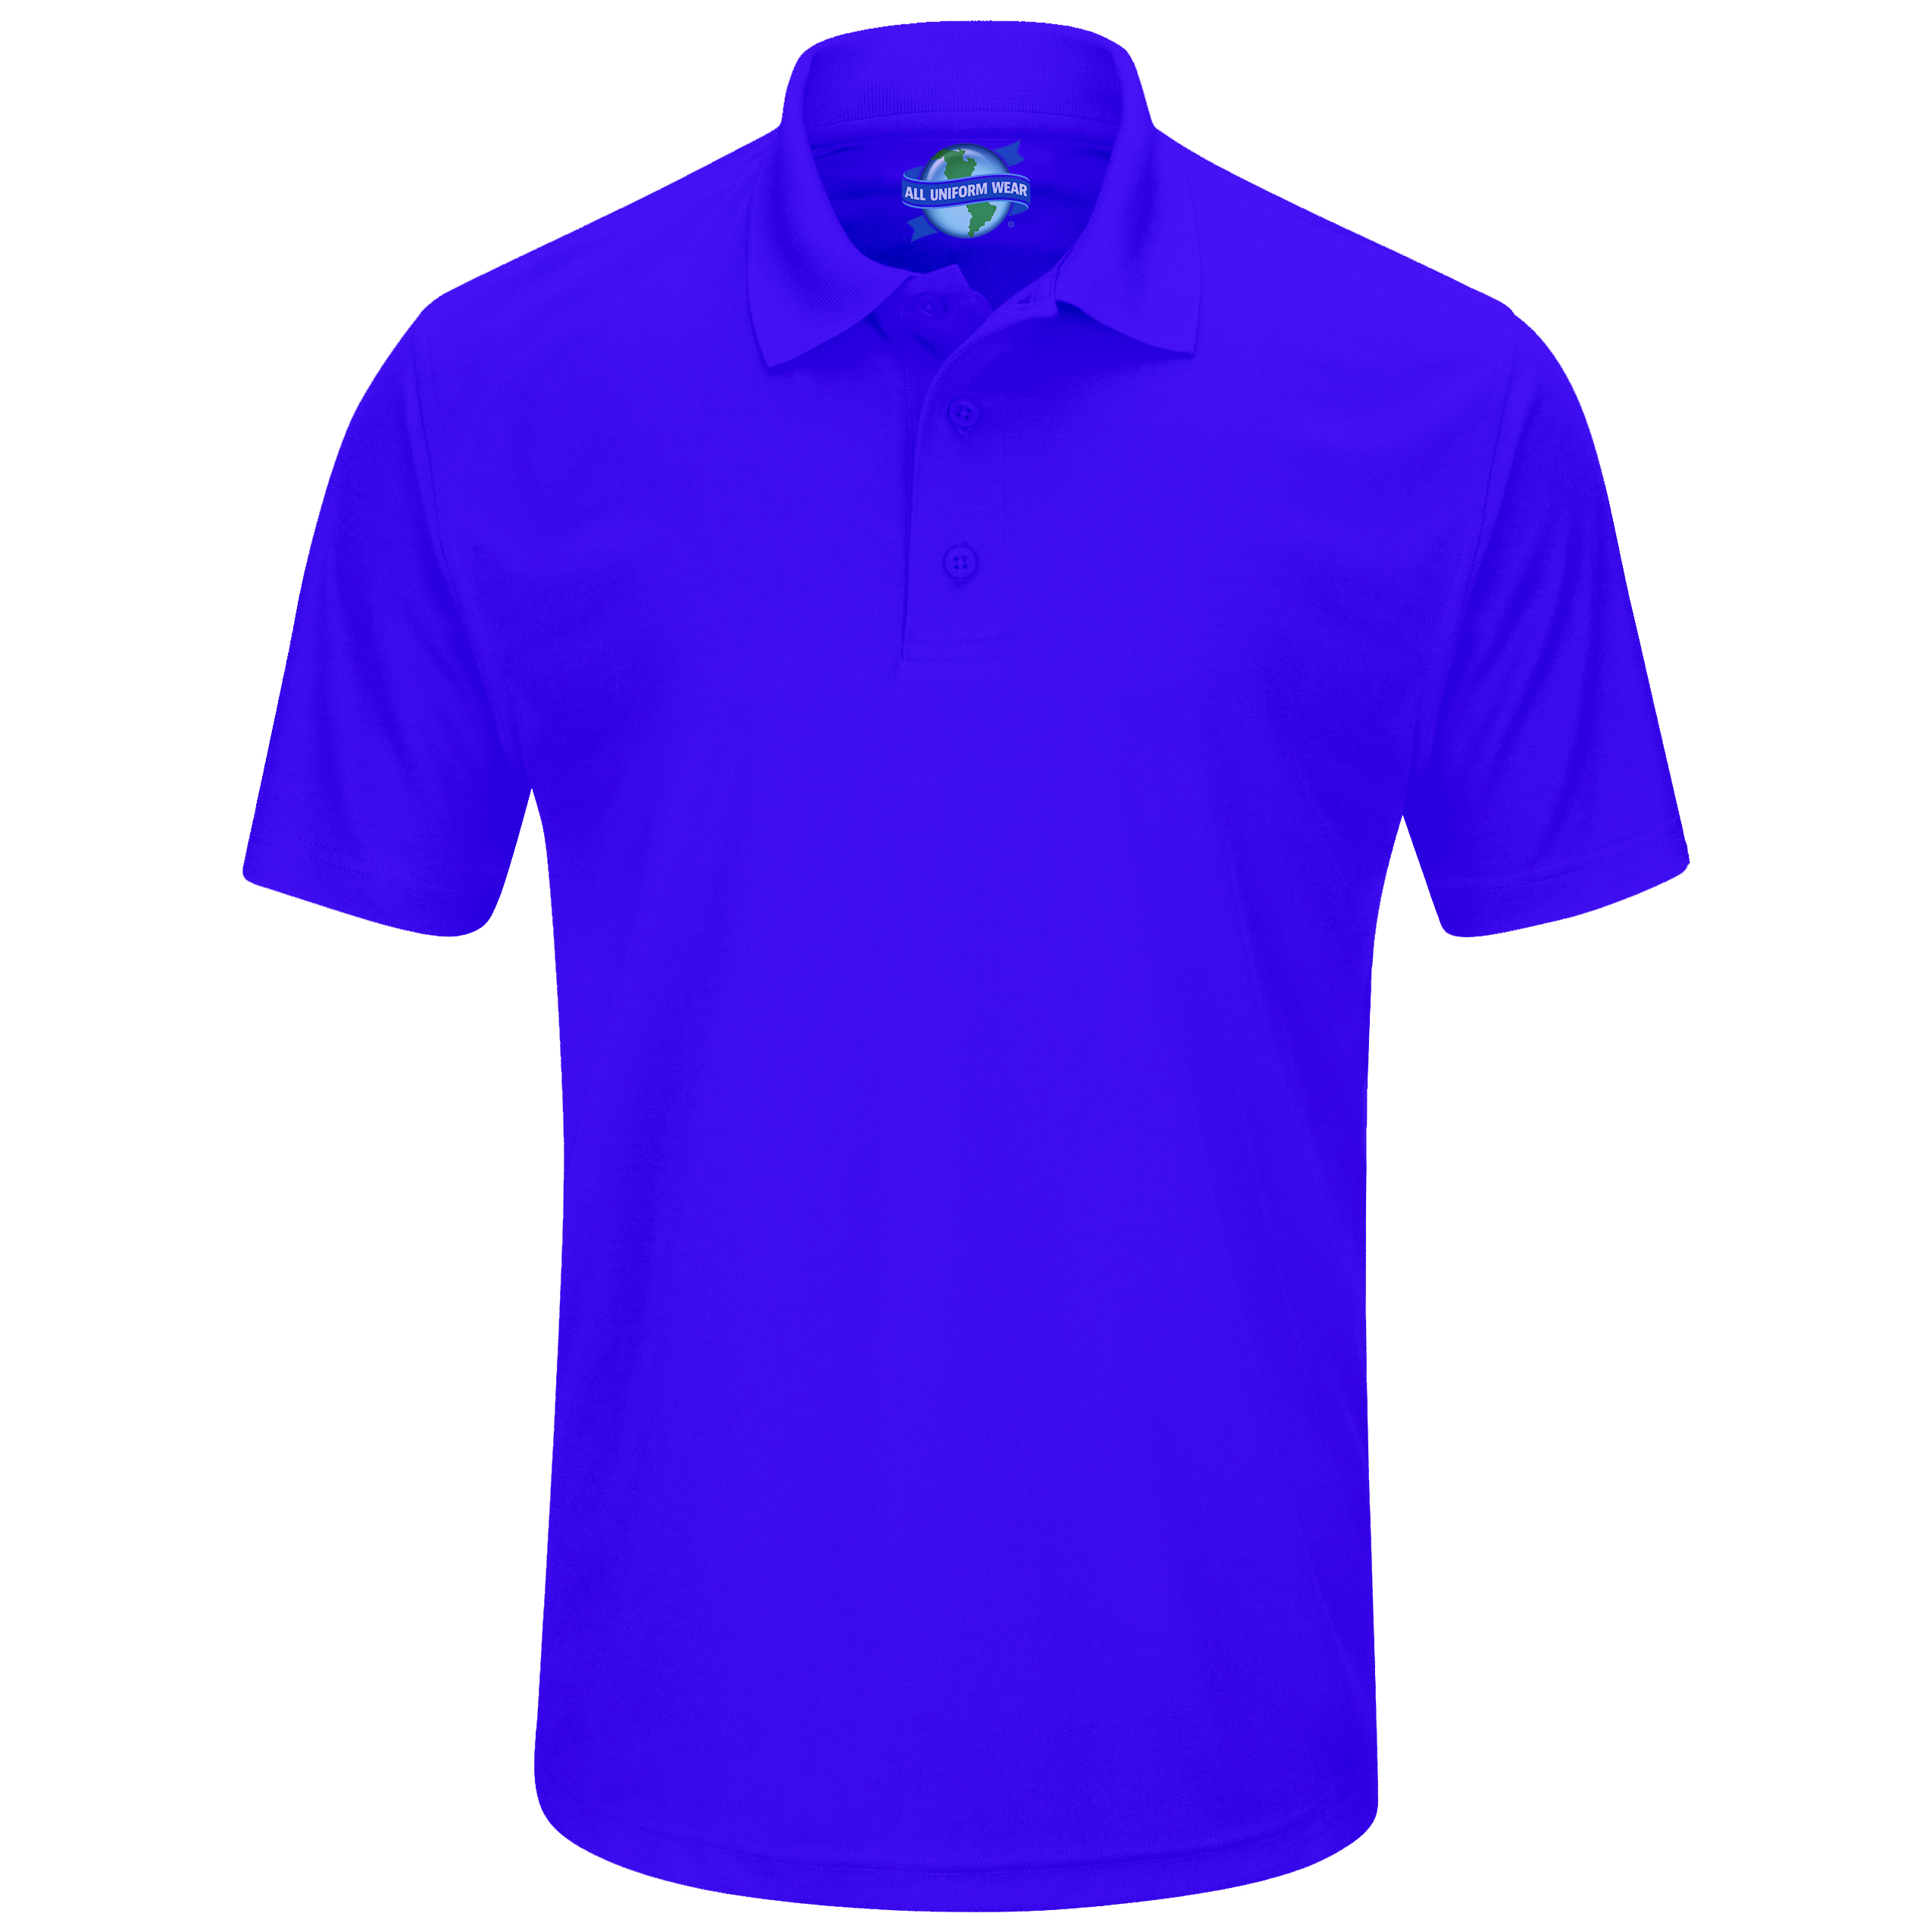 AUW Uniforms: Universal Short Sleeve Pique Polo Shirt-All Uniform Wear